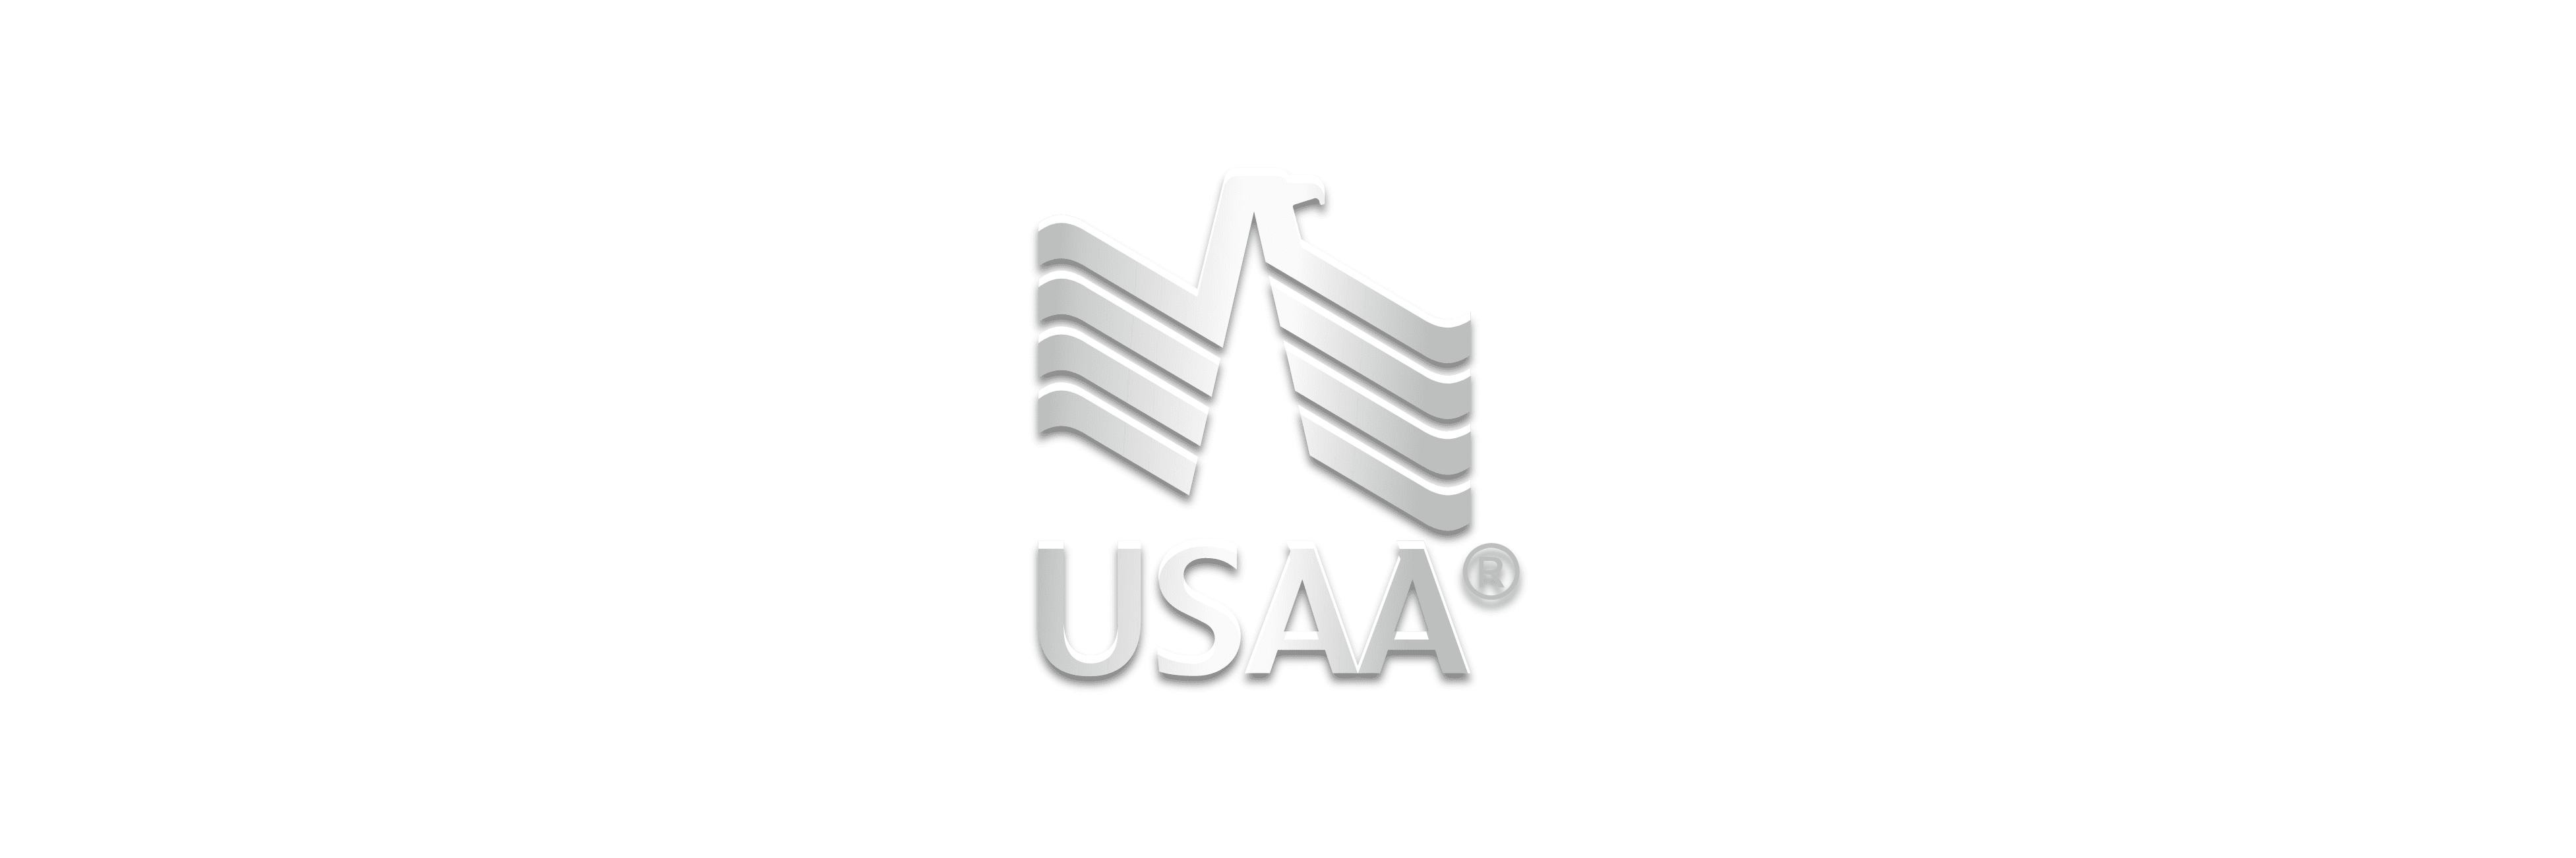 Usaa Cashiers Check >> The 8 Best Banks For Checking Accounts In 2019